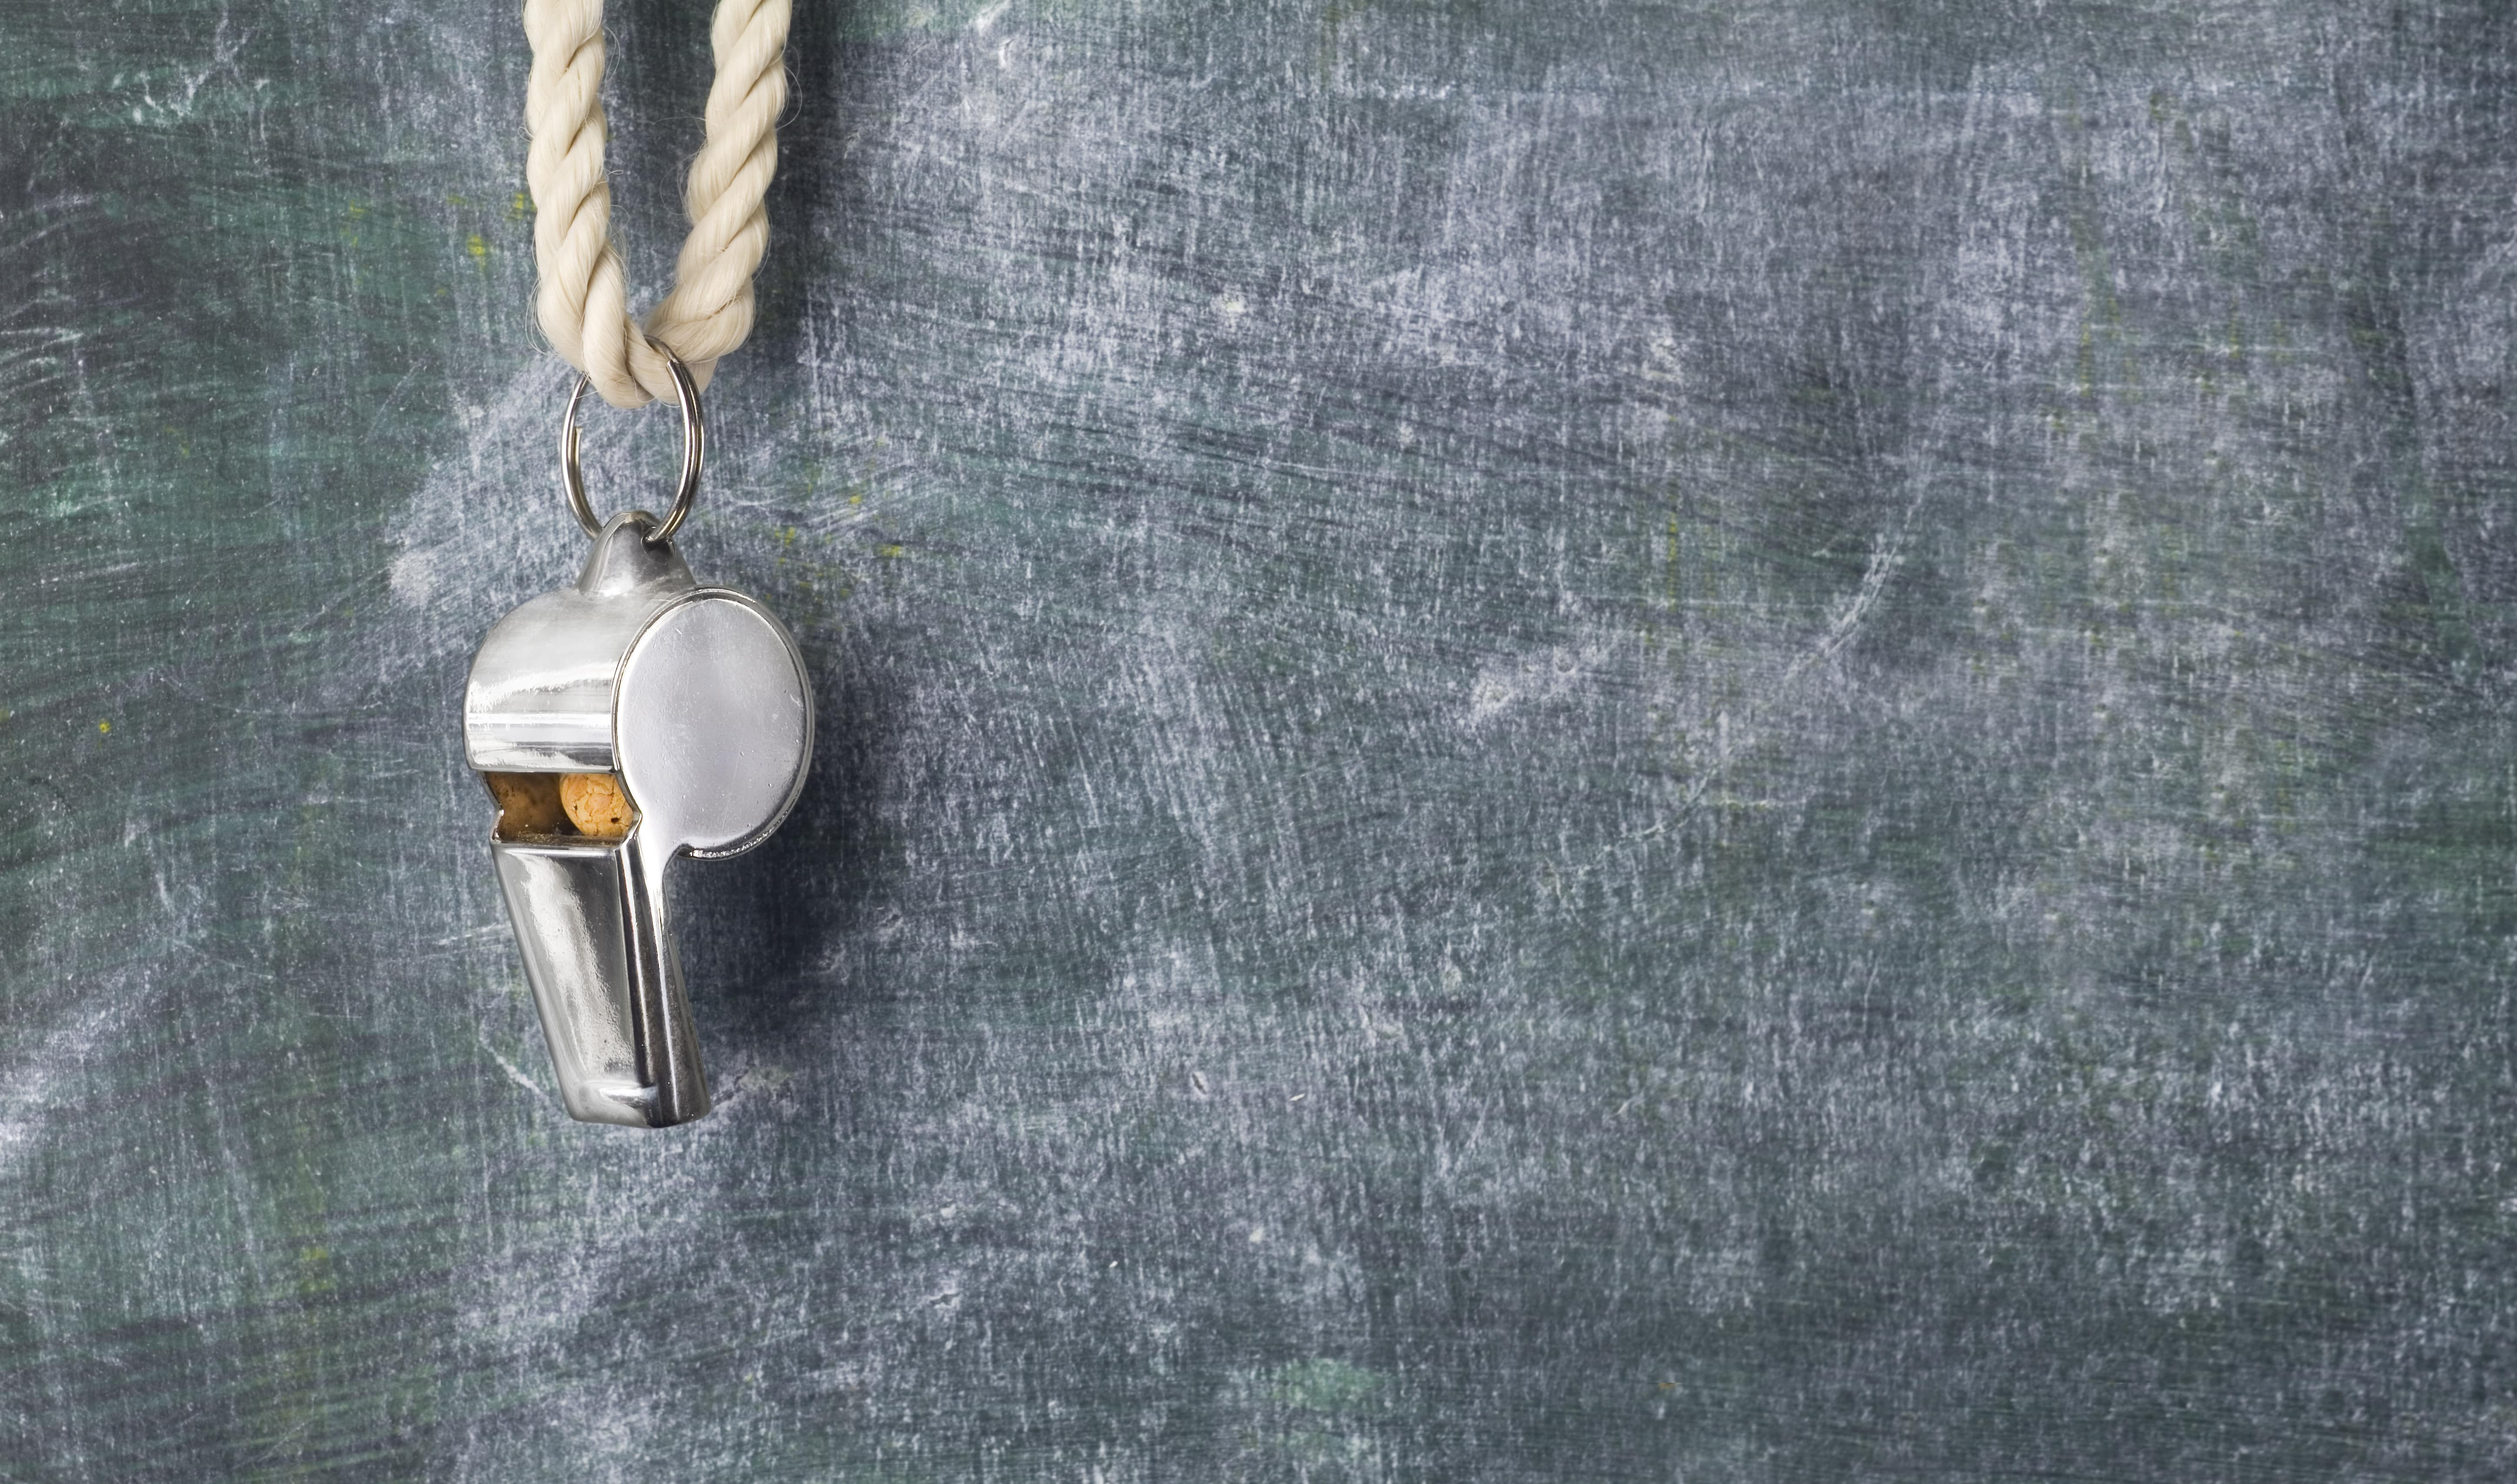 Image of a coach's whistle against a grey concrete background